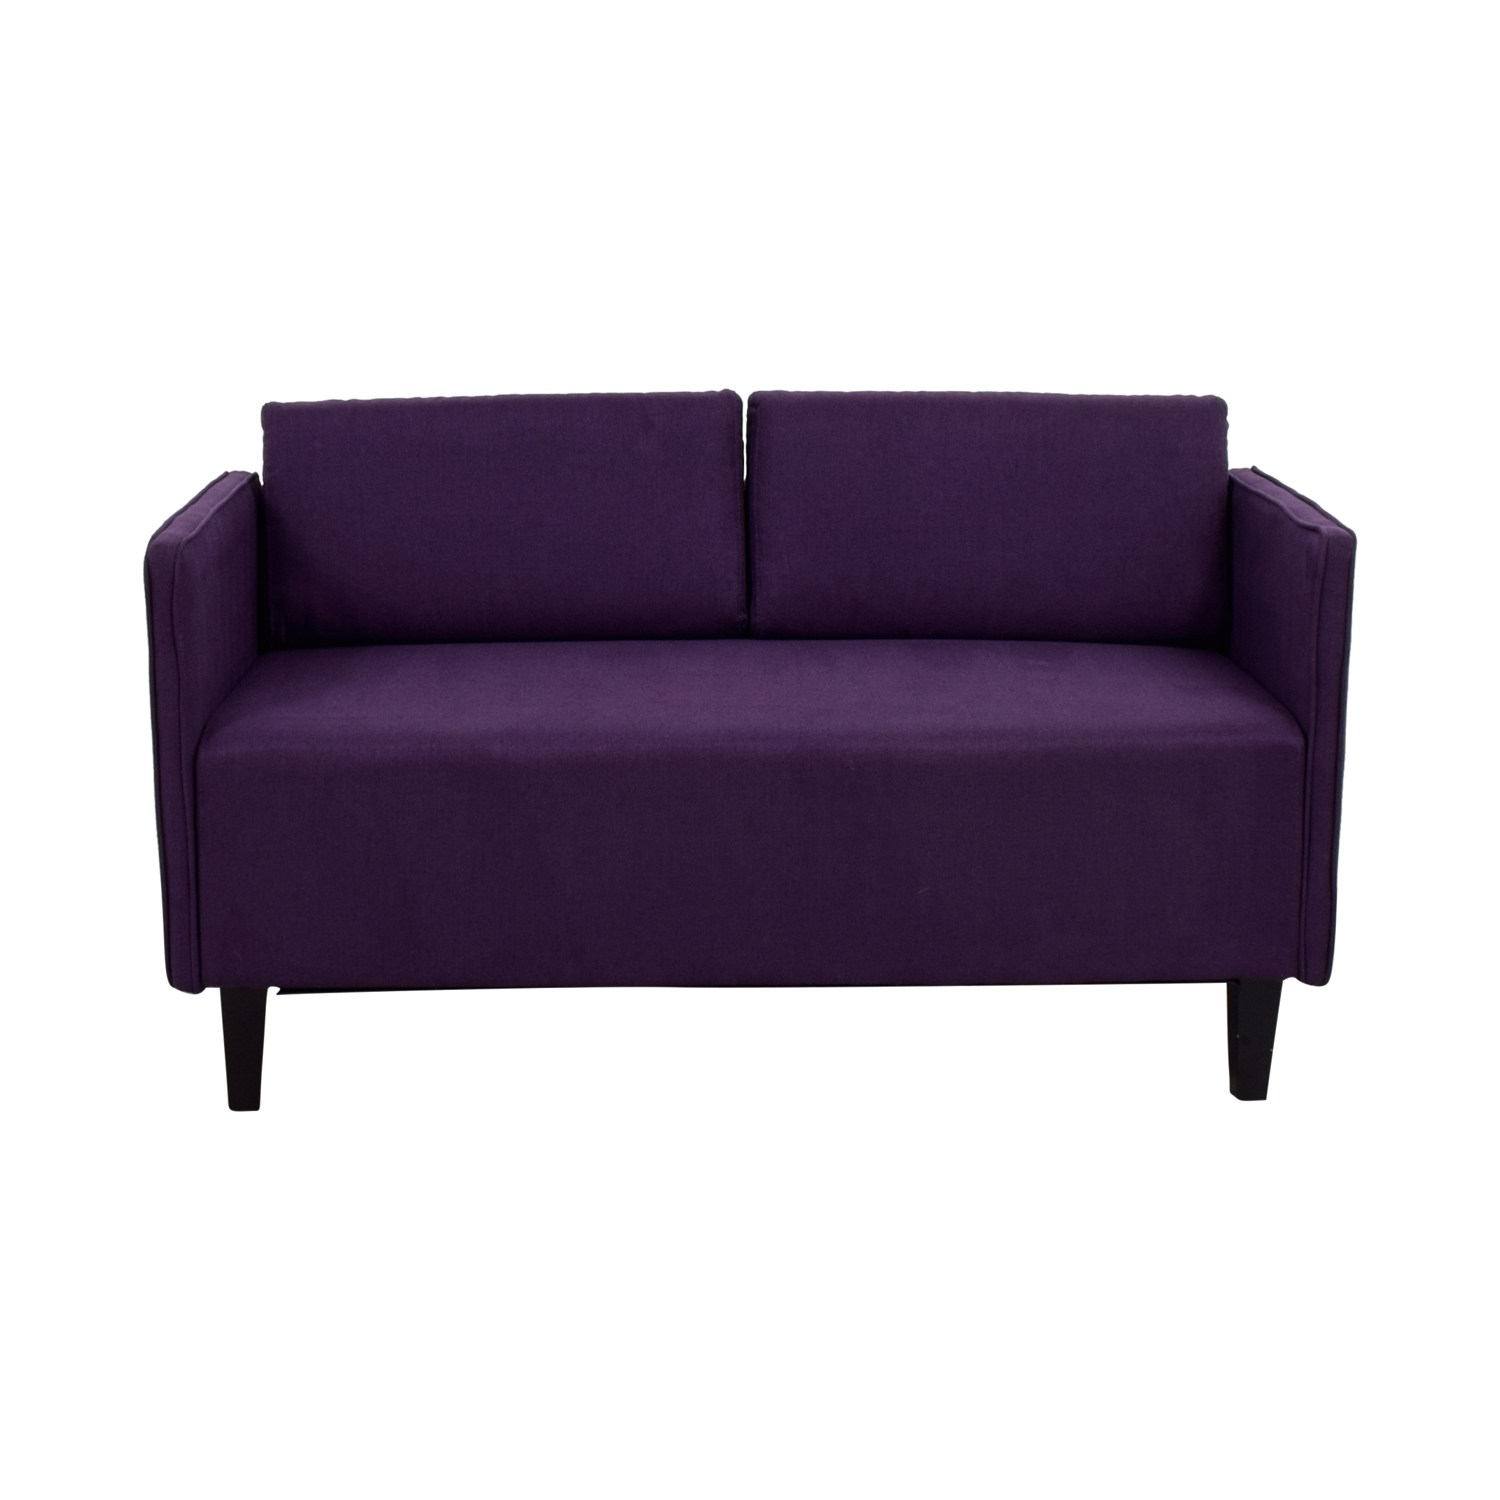 buy Ebern Designs Ebern Designs Dempsey Purple Herringbone Loveseat online